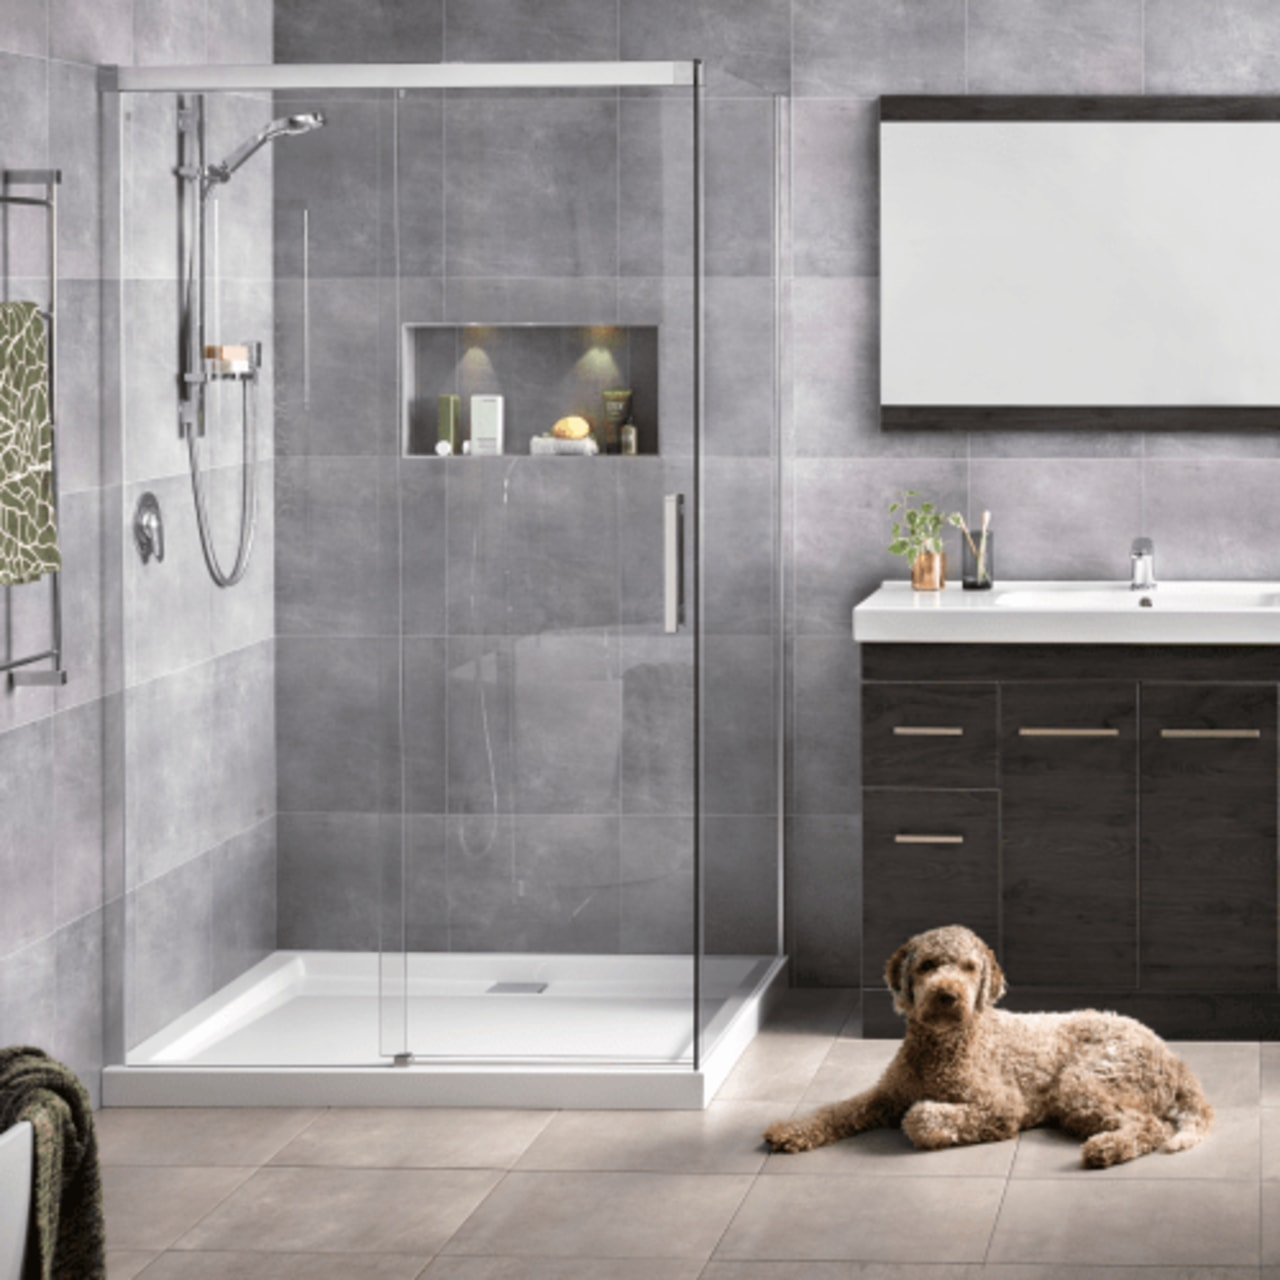 Make sure you choose tiles that are both bathroom, bathroom accessory, door, floor, flooring, interior design, plumbing fixture, room, tap, tile, gray